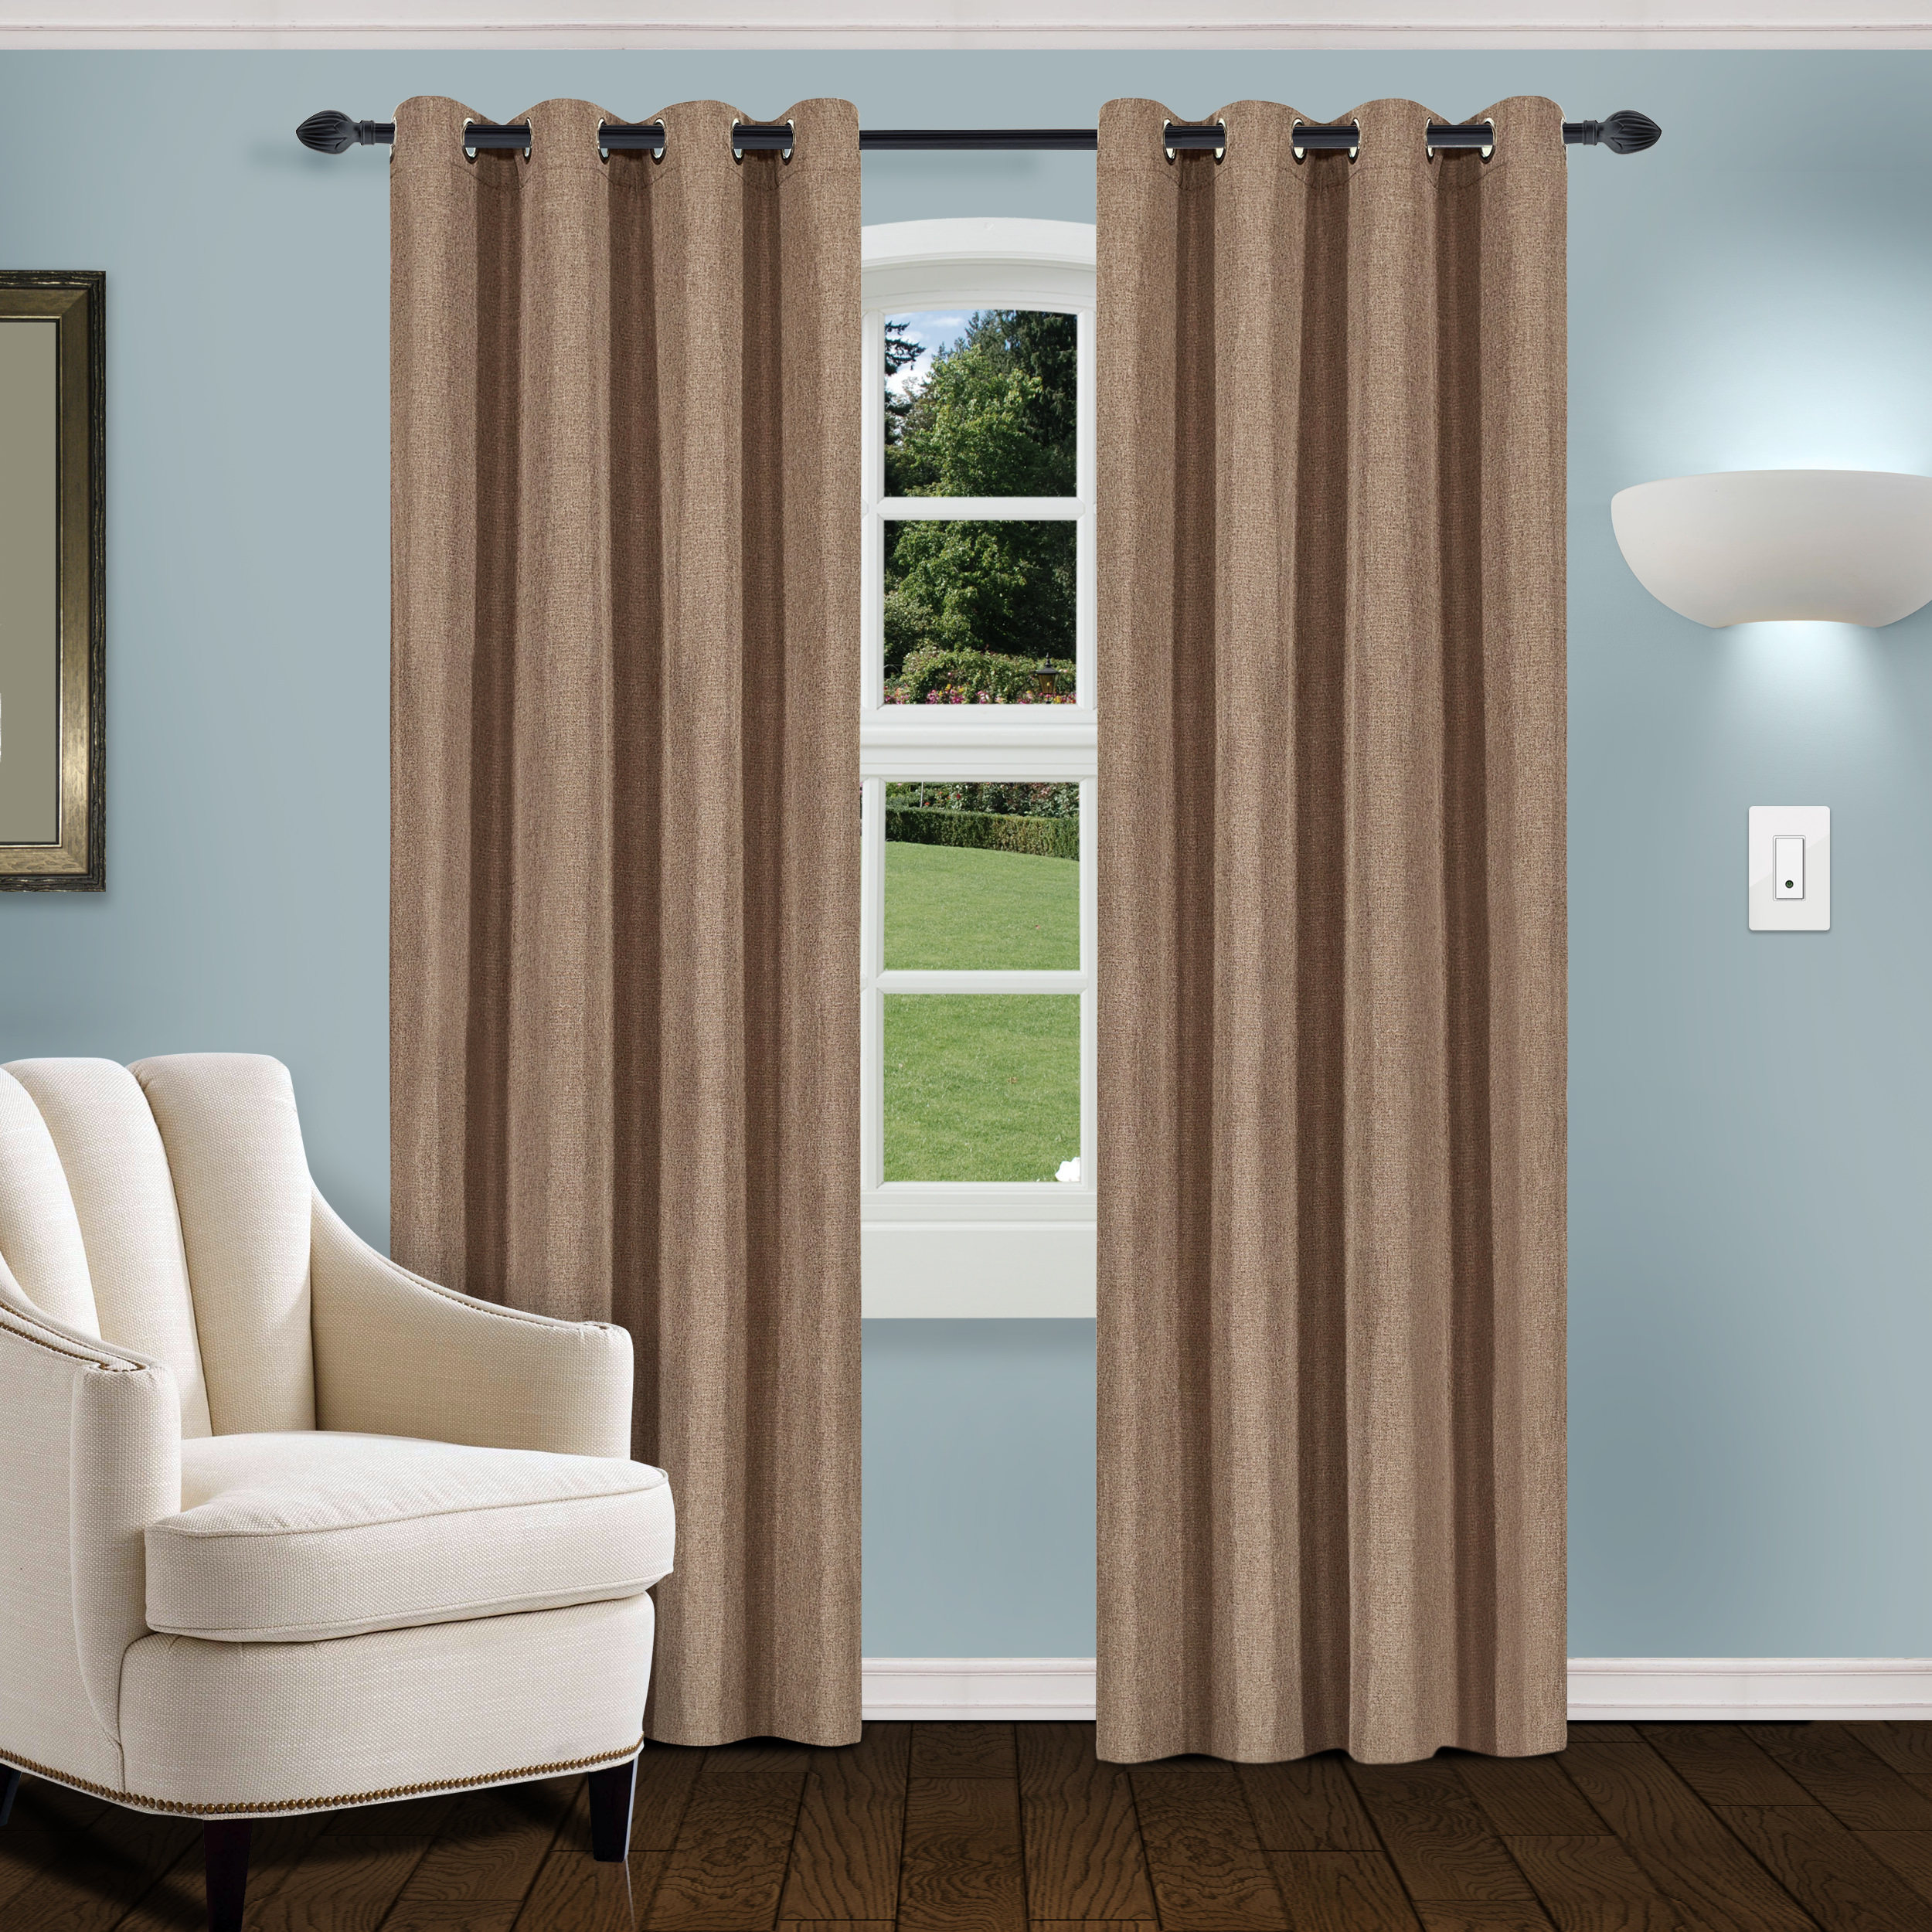 Superior Linen Textured Blackout Curtain Set Of 2 With With Solid Thermal Insulated Blackout Curtain Panel Pairs (View 9 of 30)